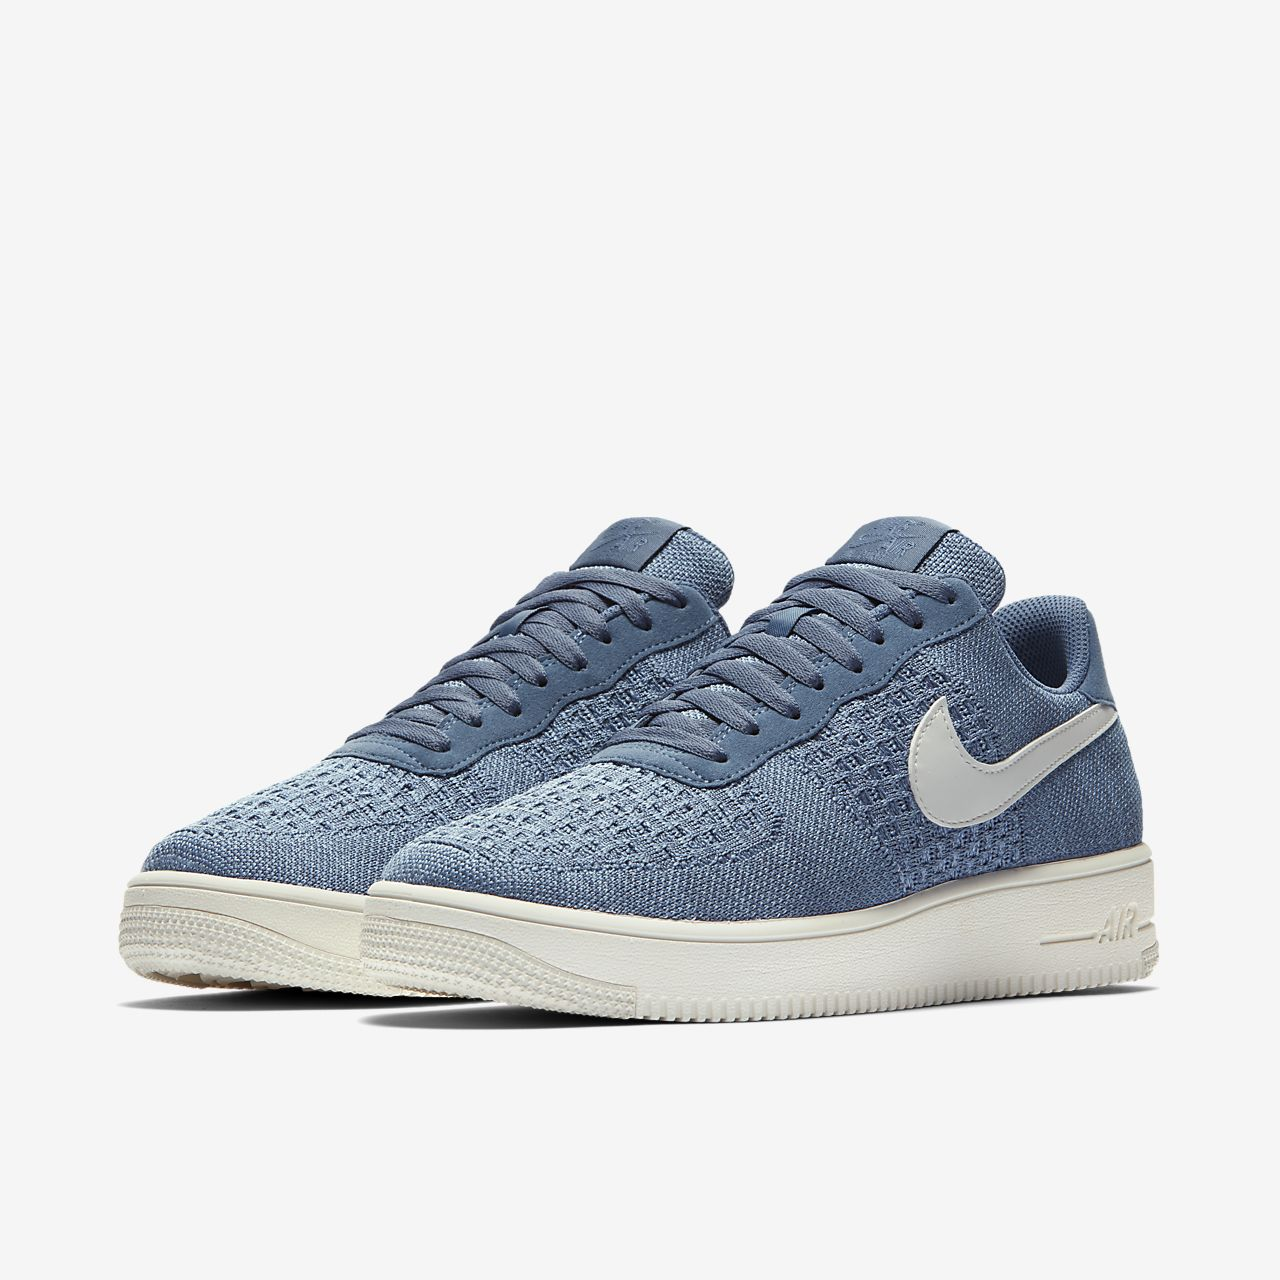 new product 90ff3 07466 Nike Air Force 1 Flyknit 2.0 Men's Shoe